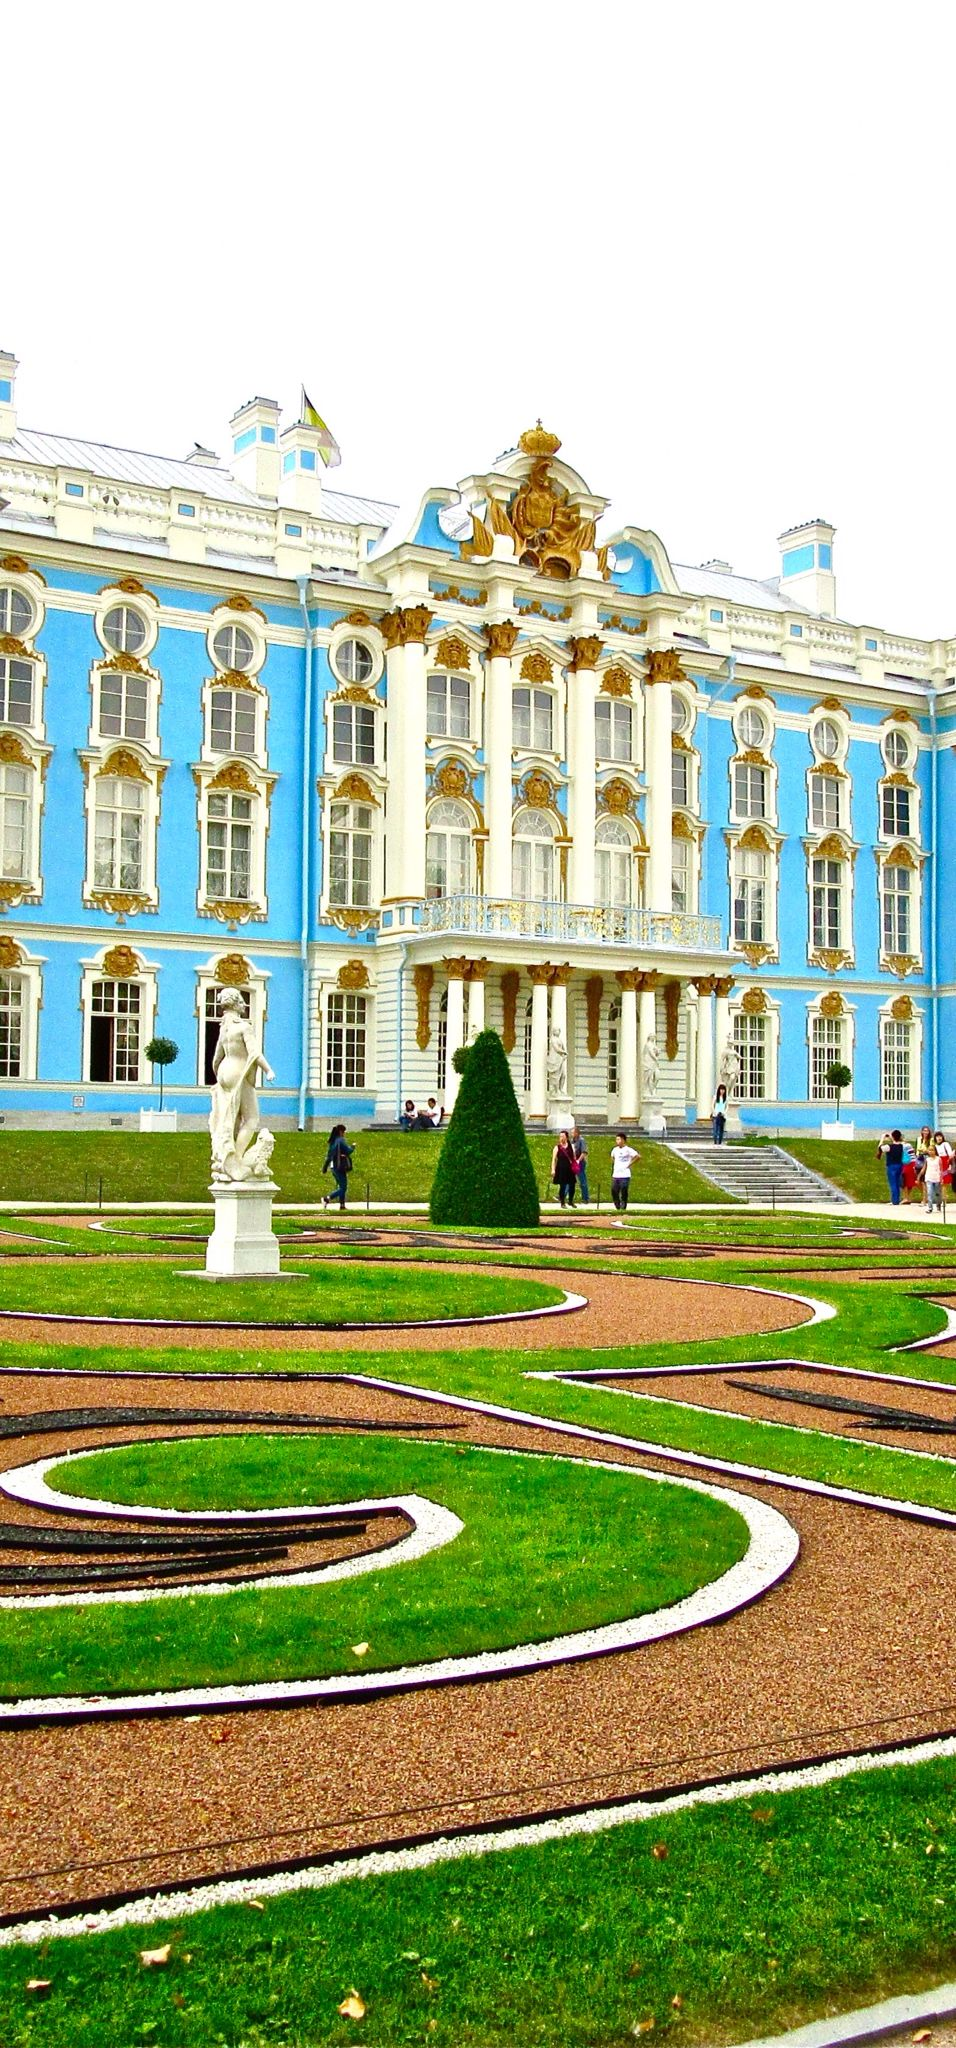 The Catherine Palace,Tsarskoye Selo (Pushkin), Russia - a UNESCO World Heritage Site